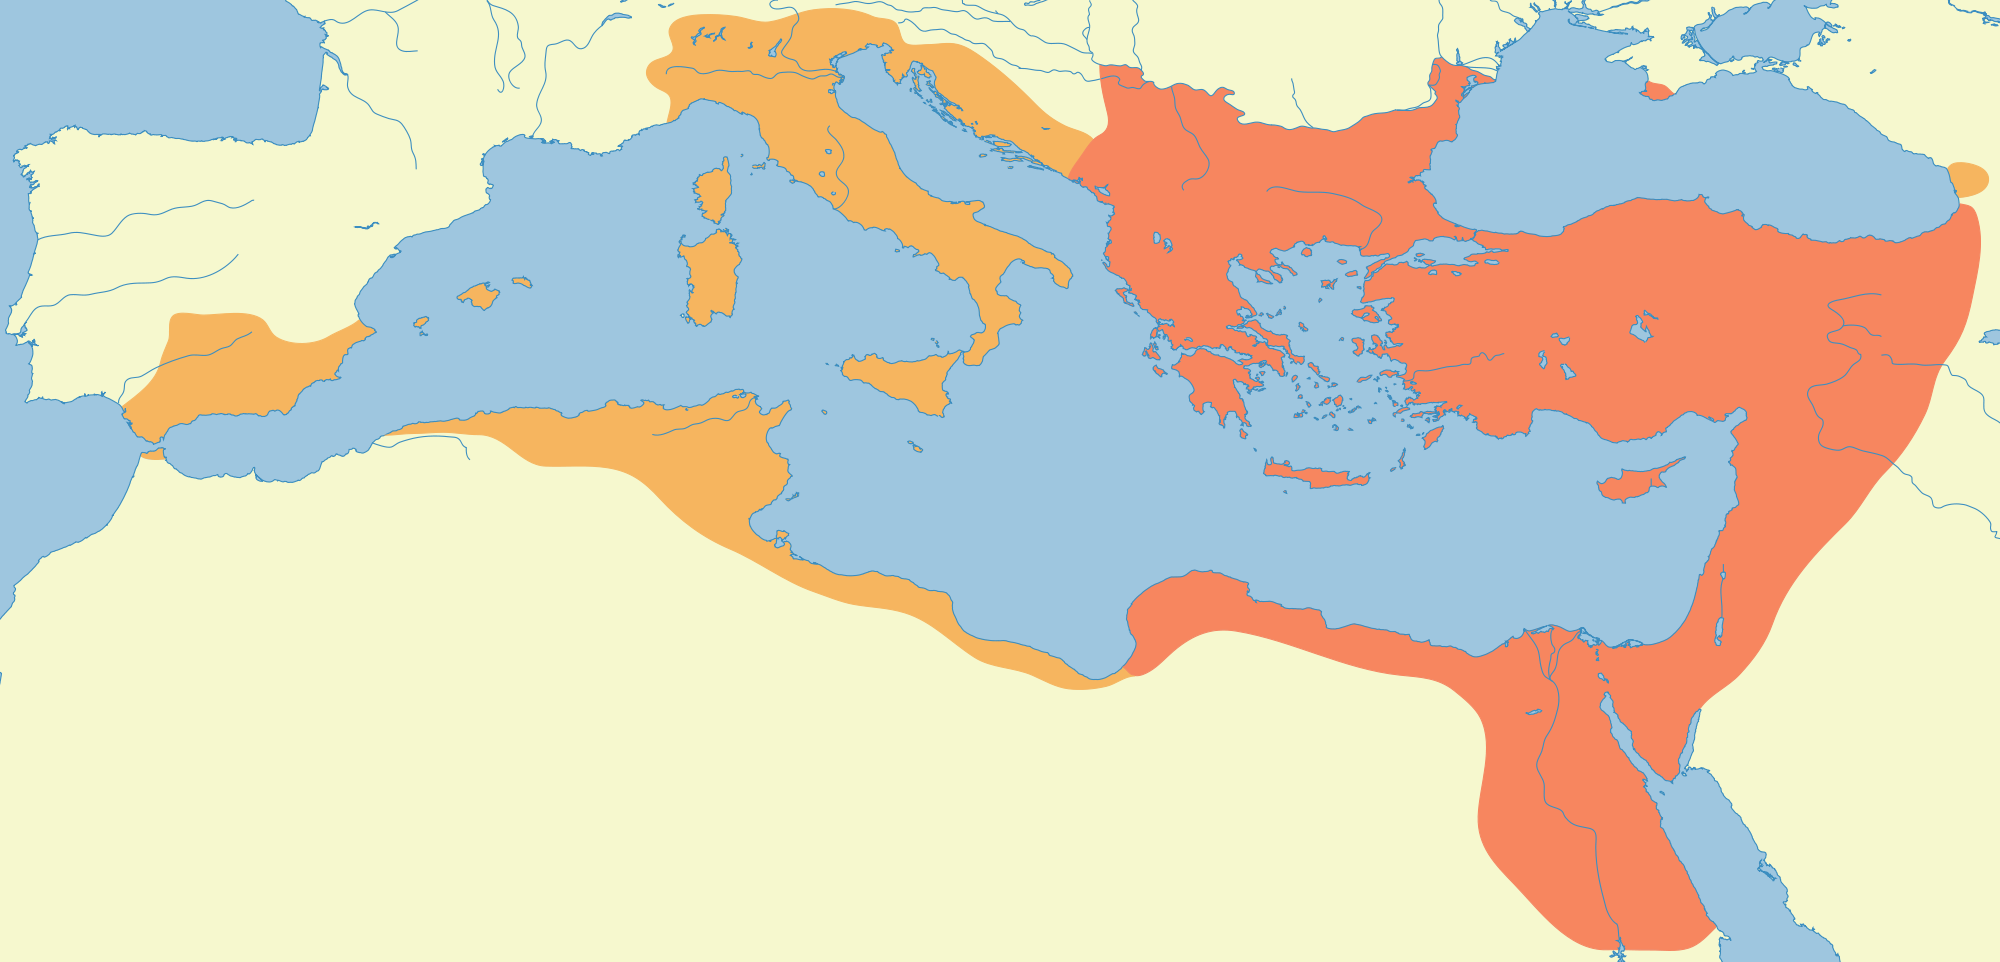 The Eastern Roman Empire 527-565